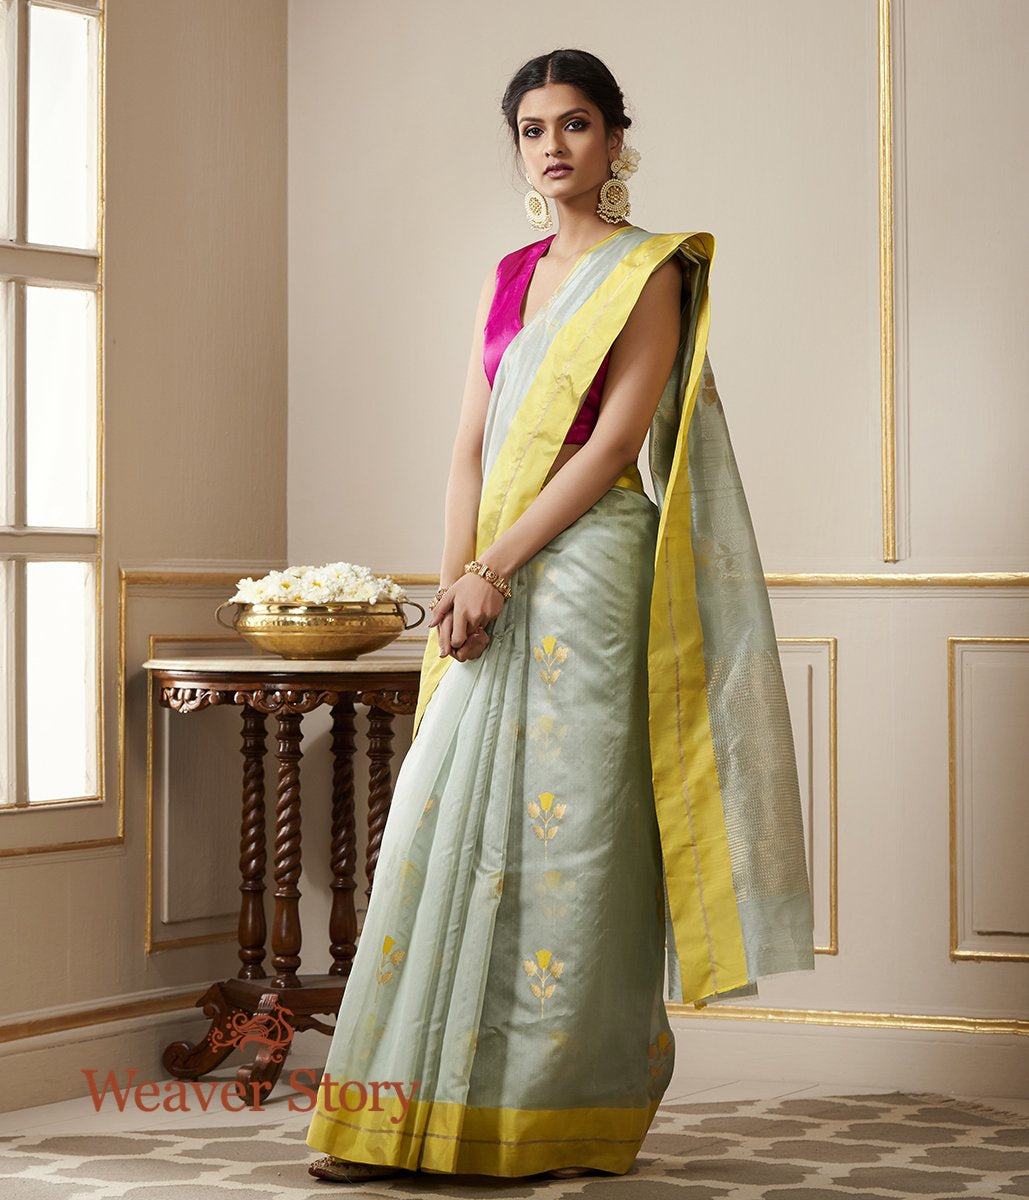 Handwoven Duck Egg Blue Chanderi Silk Saree with Yellow Mushroo Borders